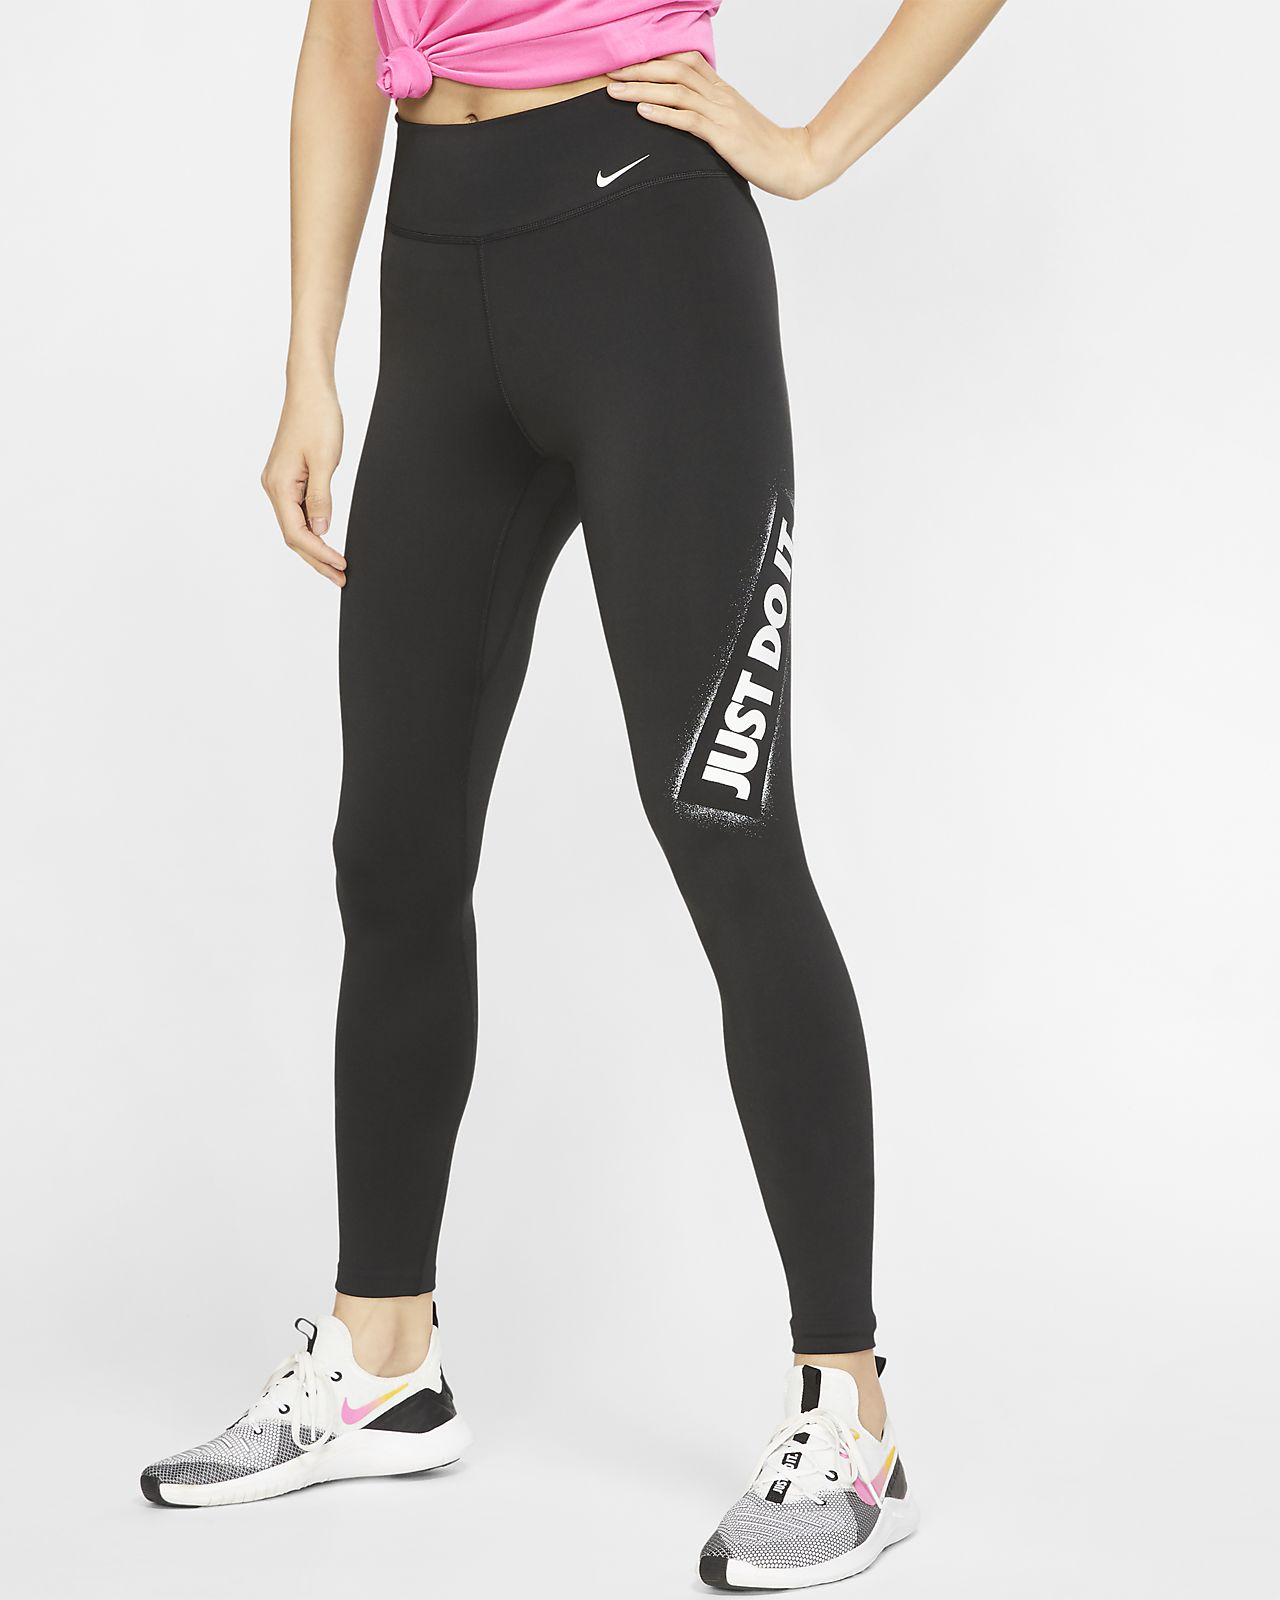 Nike One Women's JDI Tights